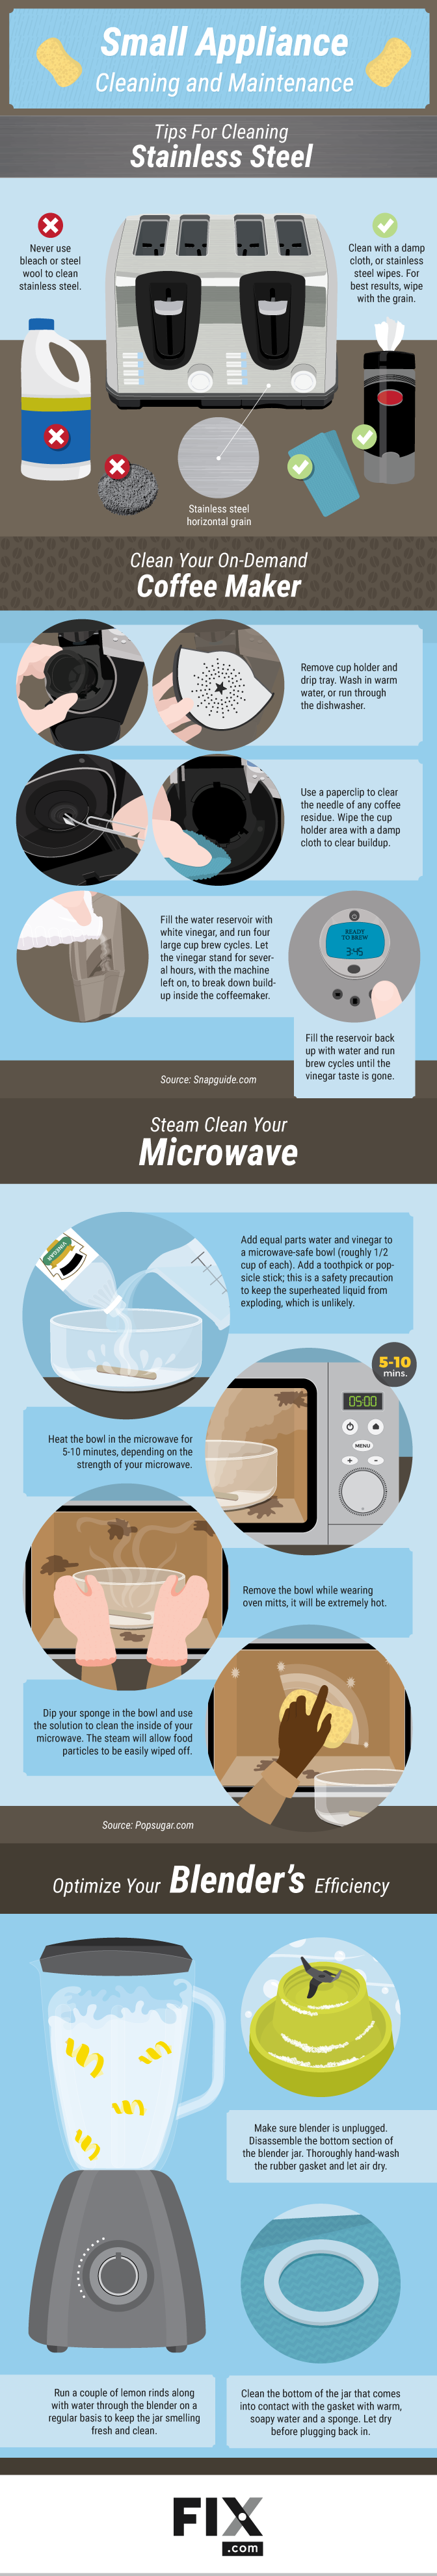 How to Optimize Safety and Efficiency of Counter-Top Appliances - Infographic